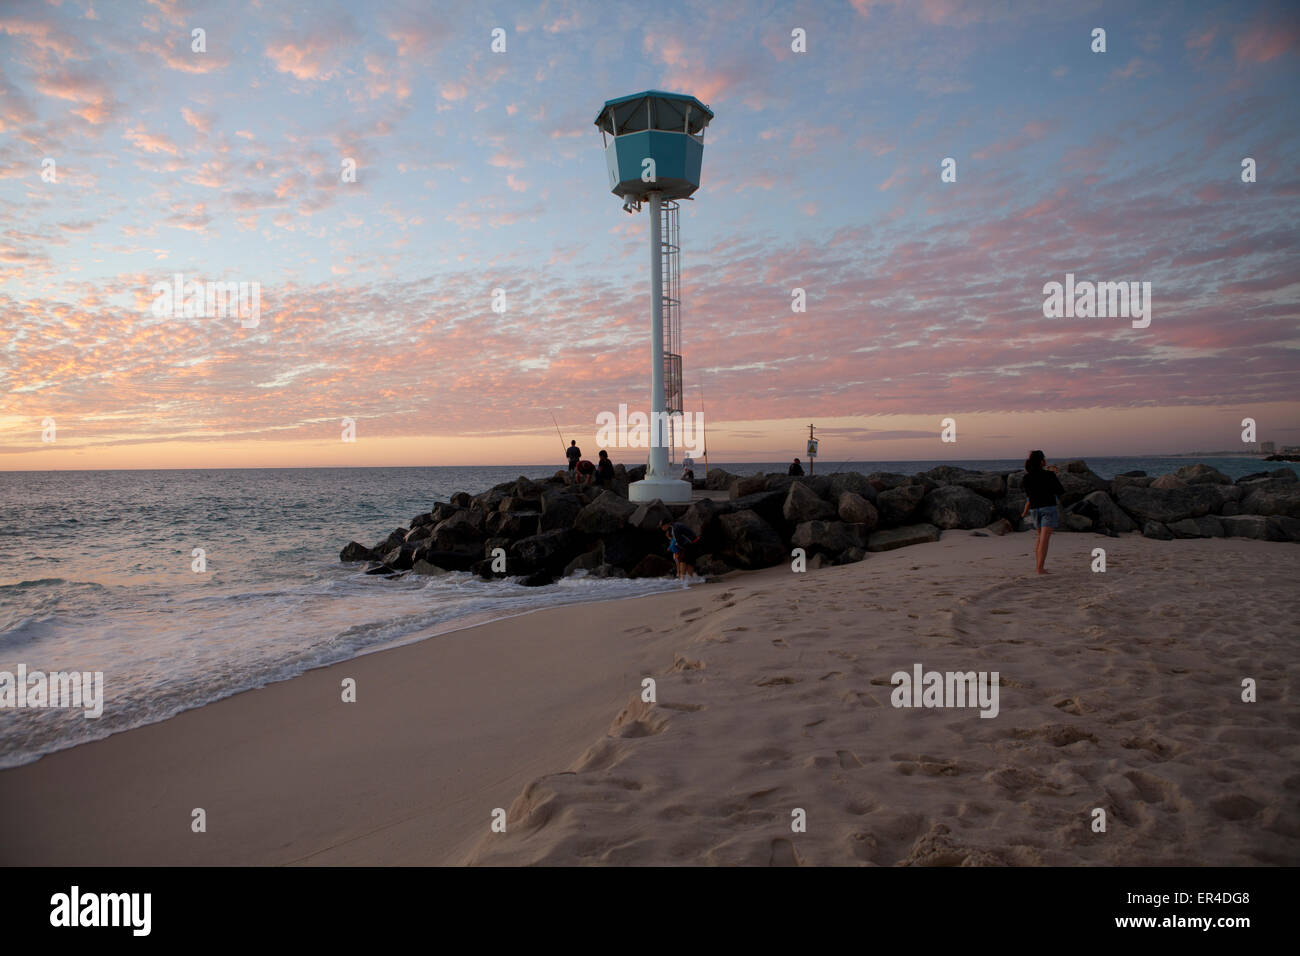 View of the Lifegaurd lookout on  City Beach in Perth during Sunset Stock Photo